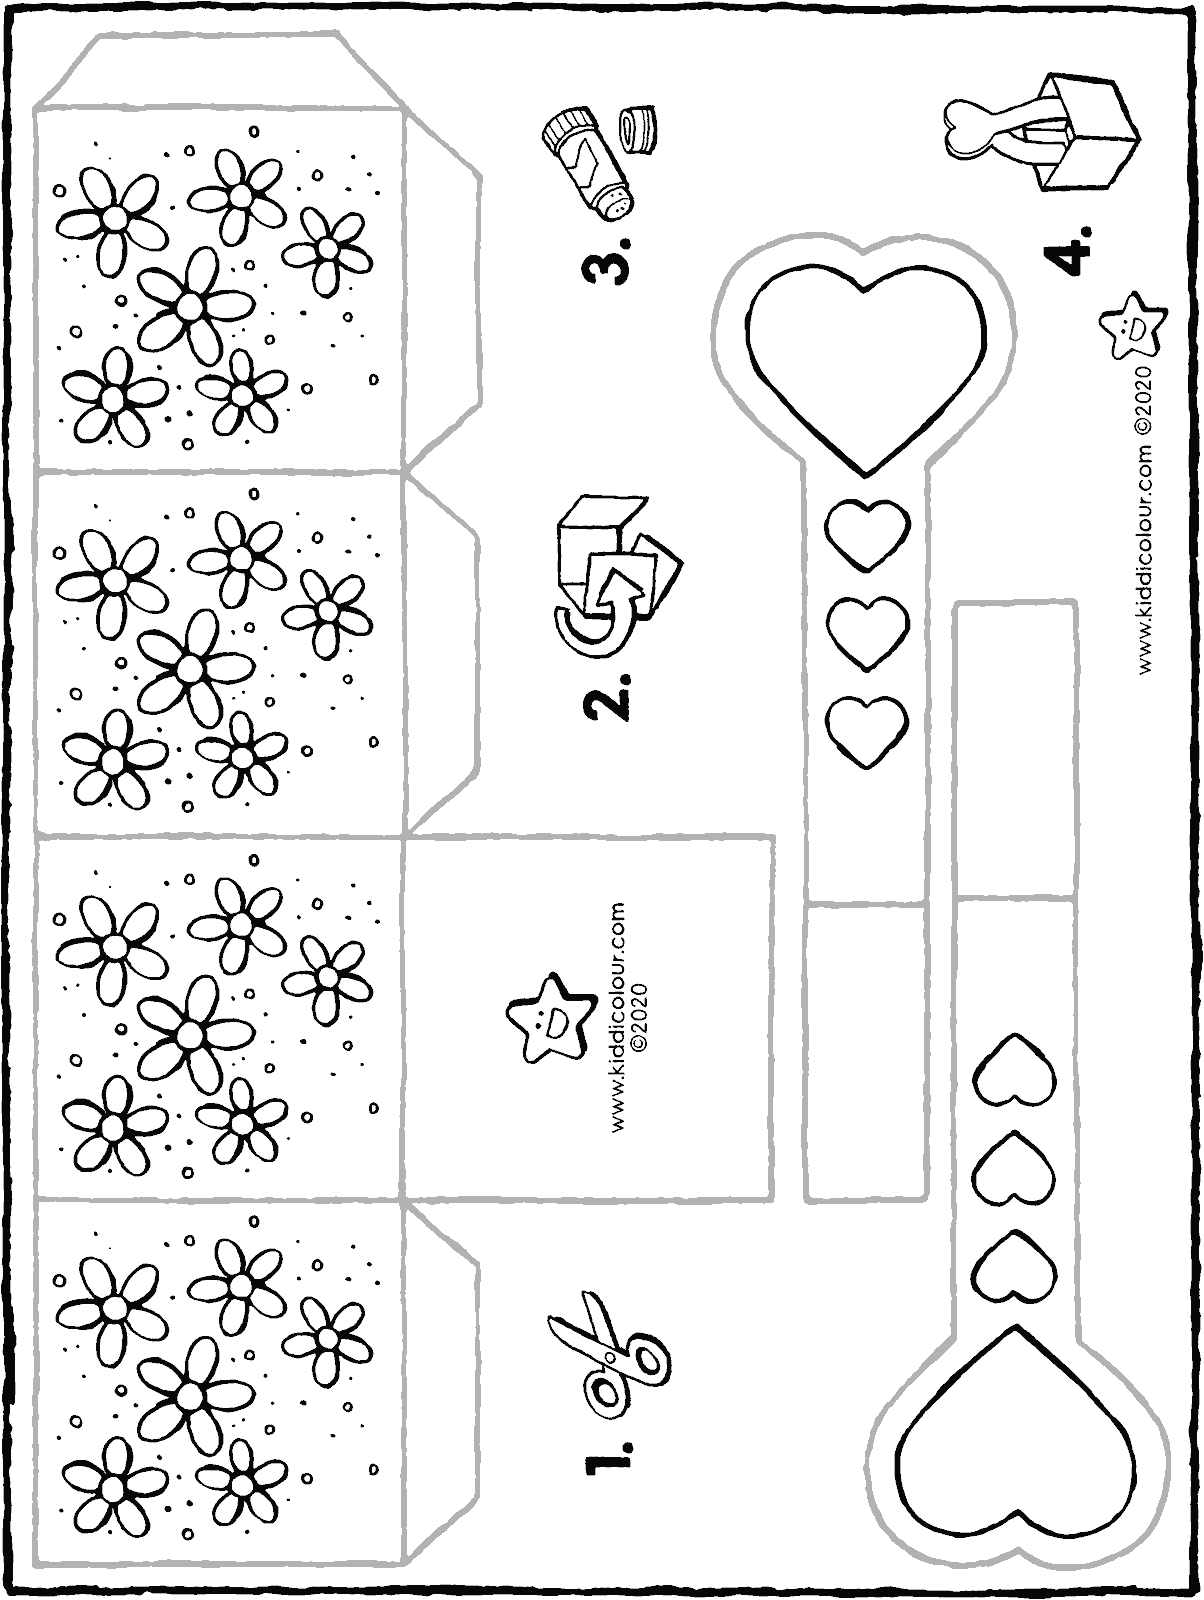 make your own basket for mother's day colouring page drawing picture 01H